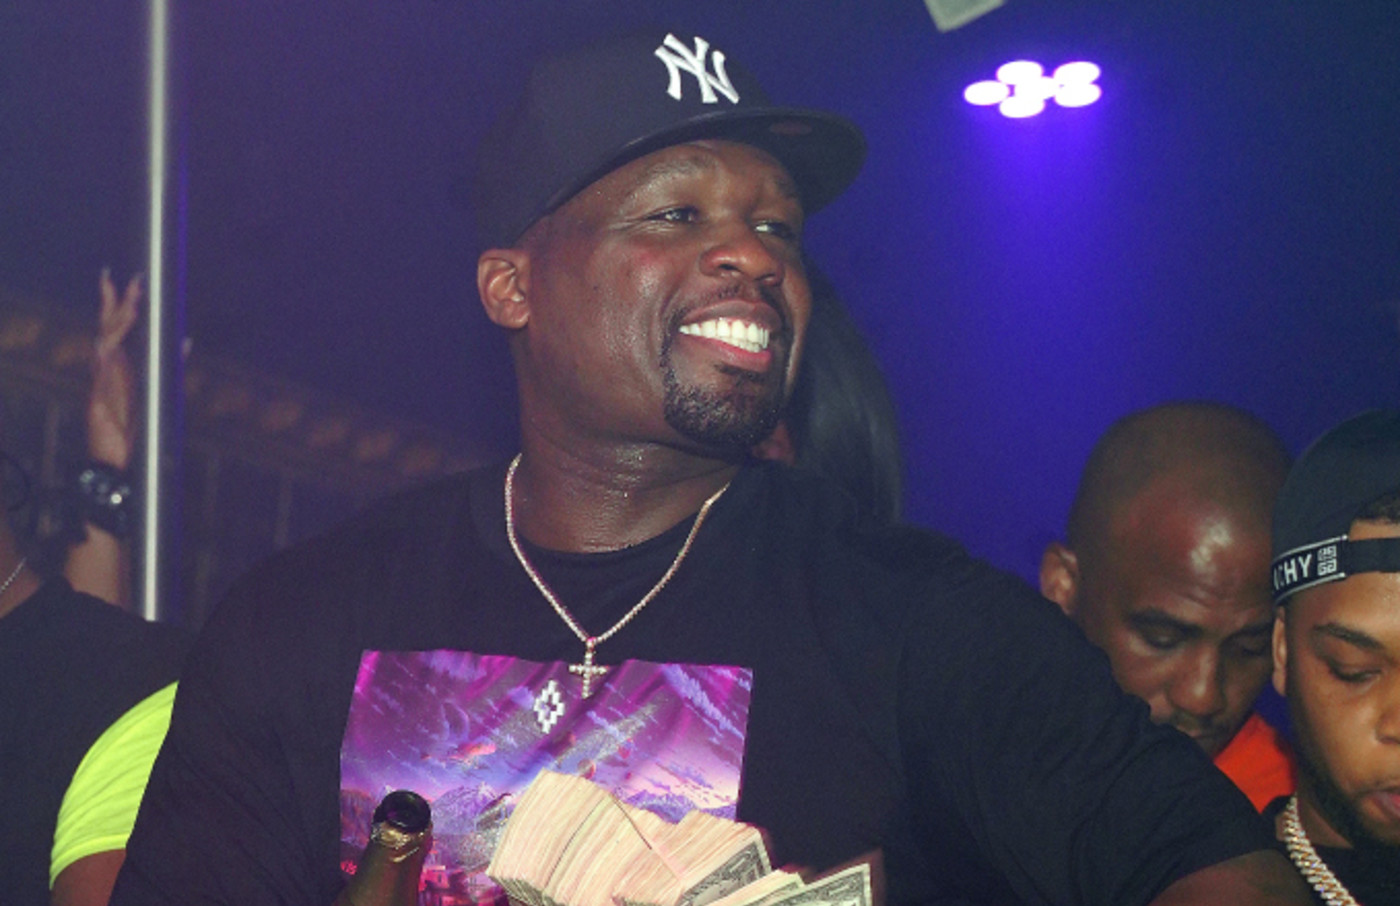 50 Cent attends Tycoon Weekend Grand Finale